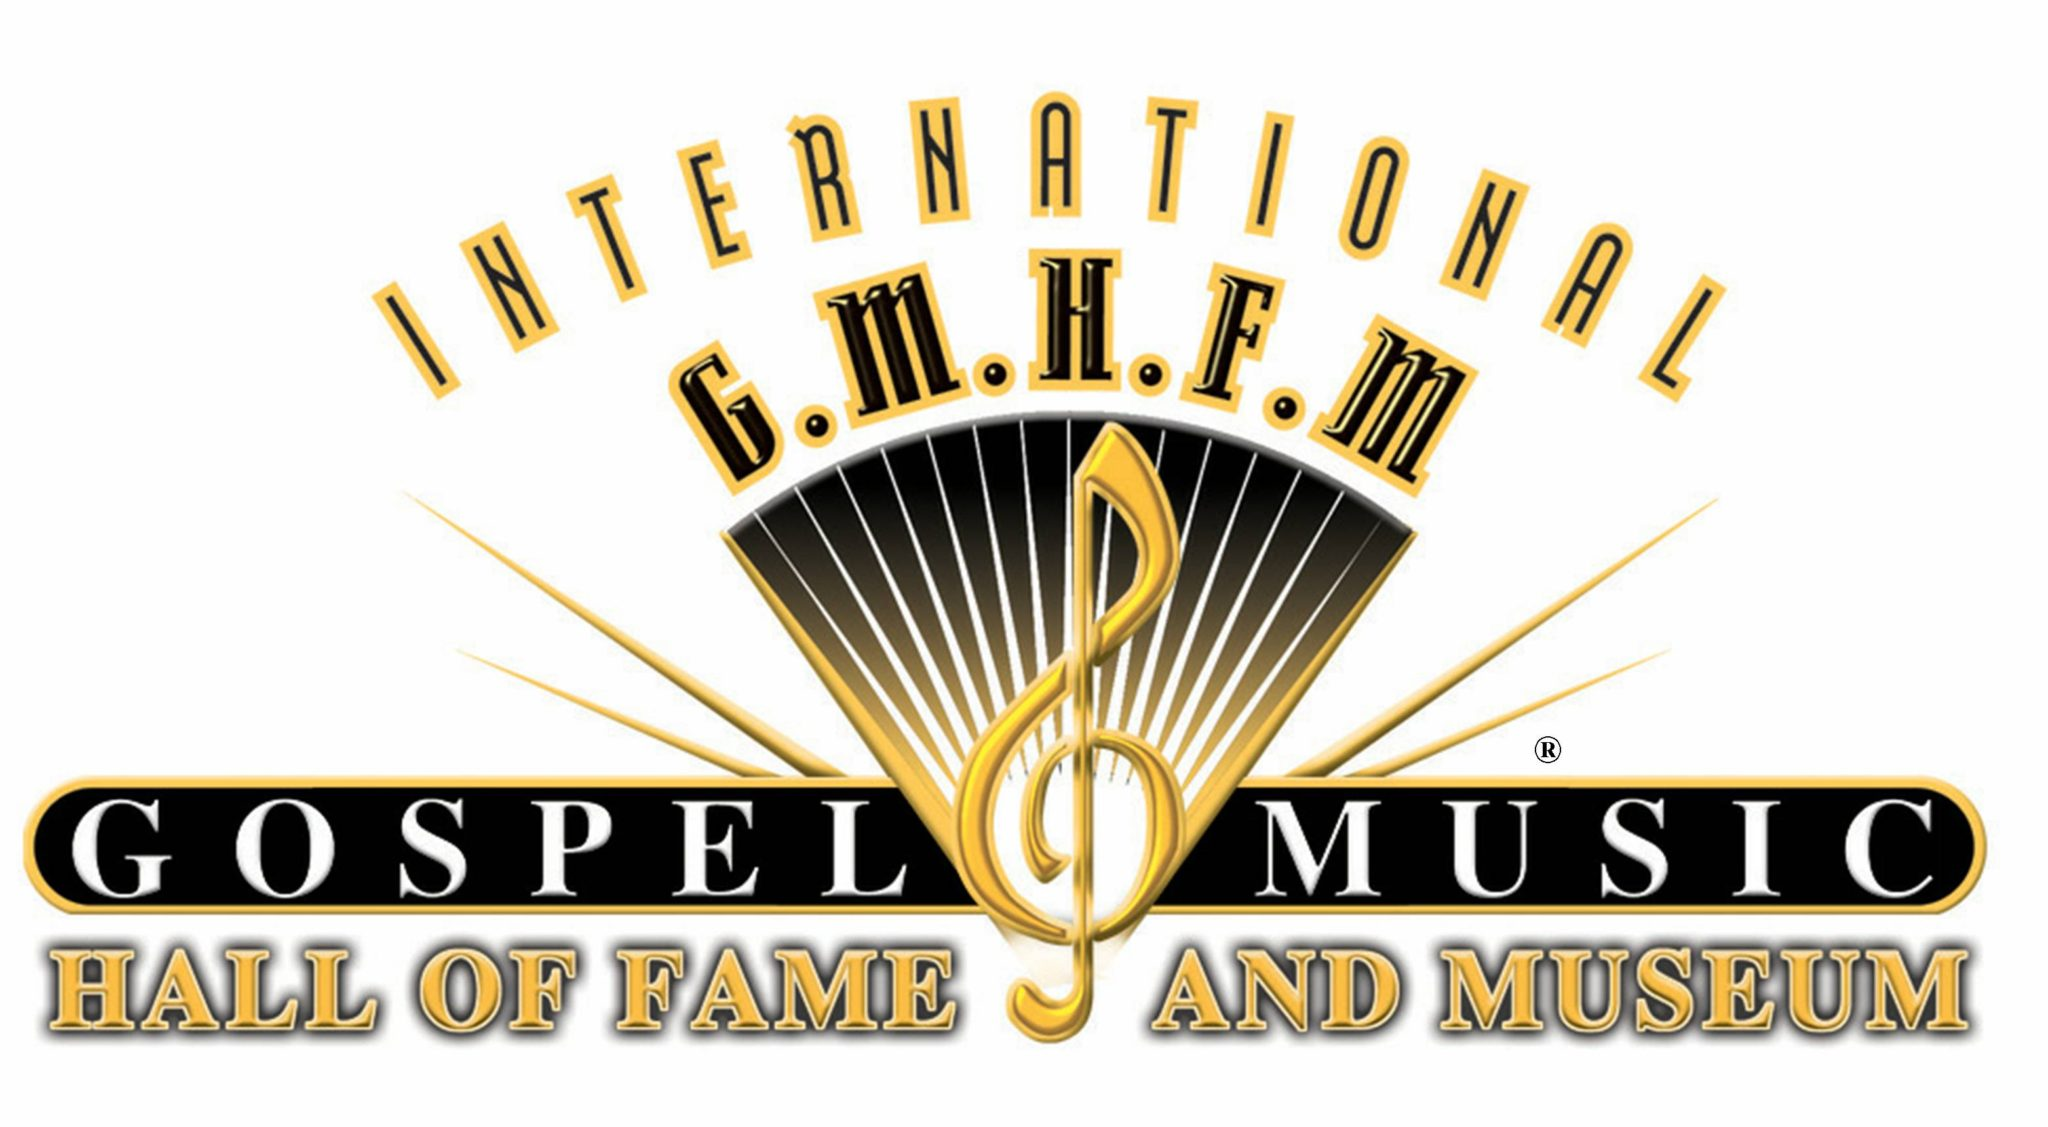 Hall of Fame | Gospel Music Association